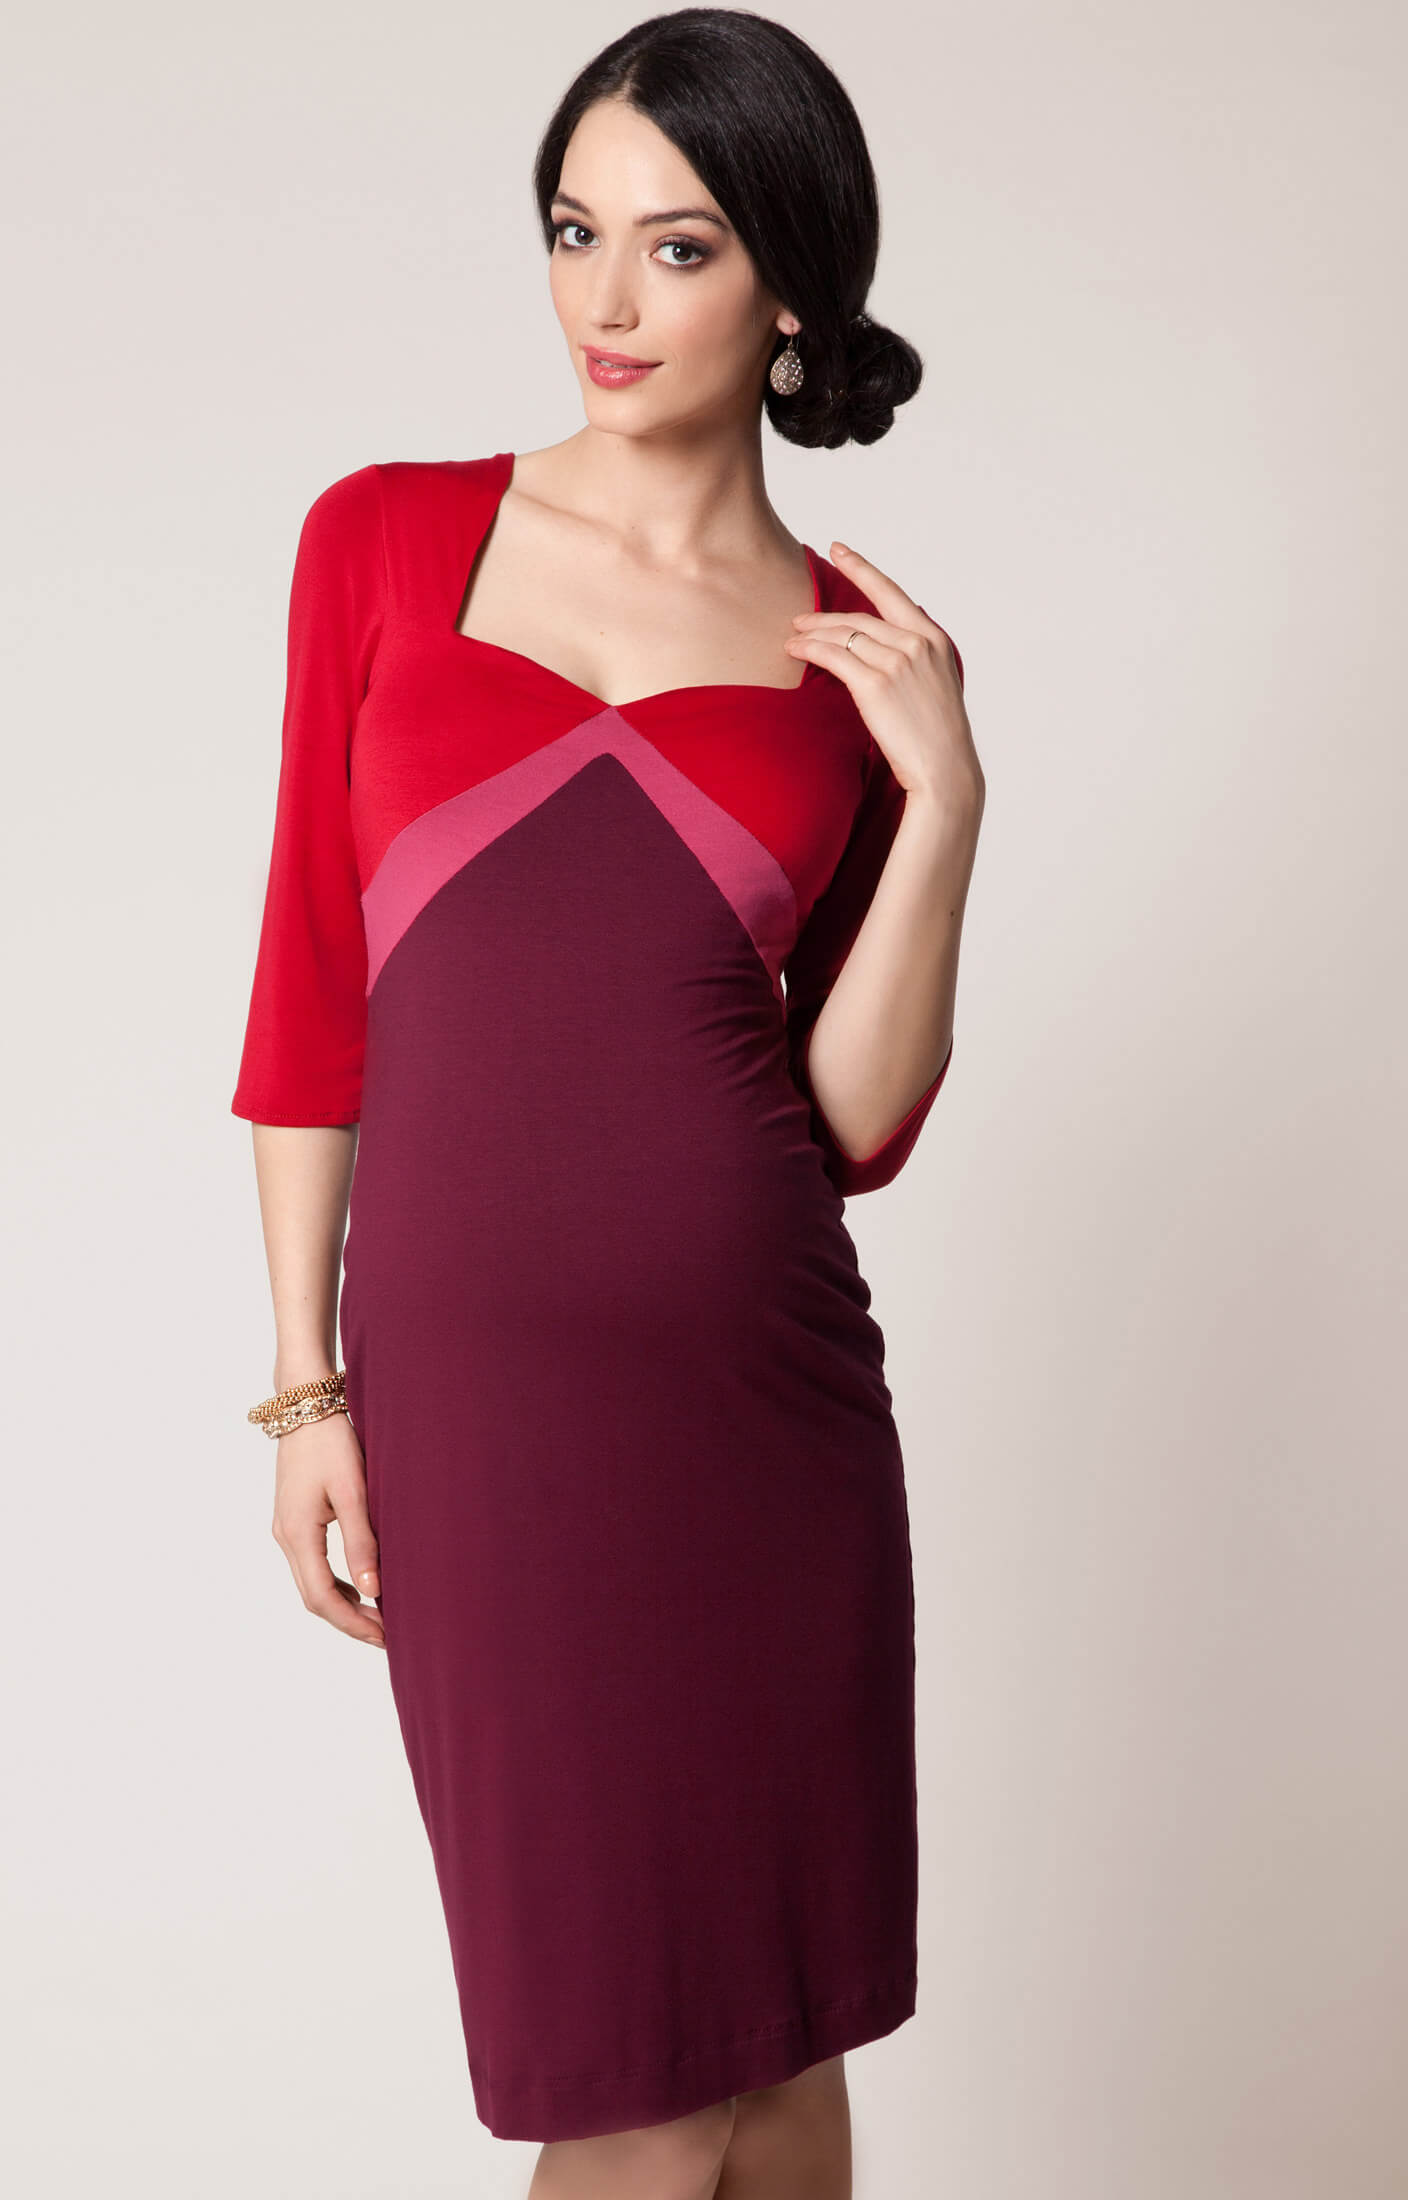 Alexa maternity dress lipstick rouge maternity wedding dresses alexa maternity dress lipstick rouge by tiffany rose ombrellifo Image collections